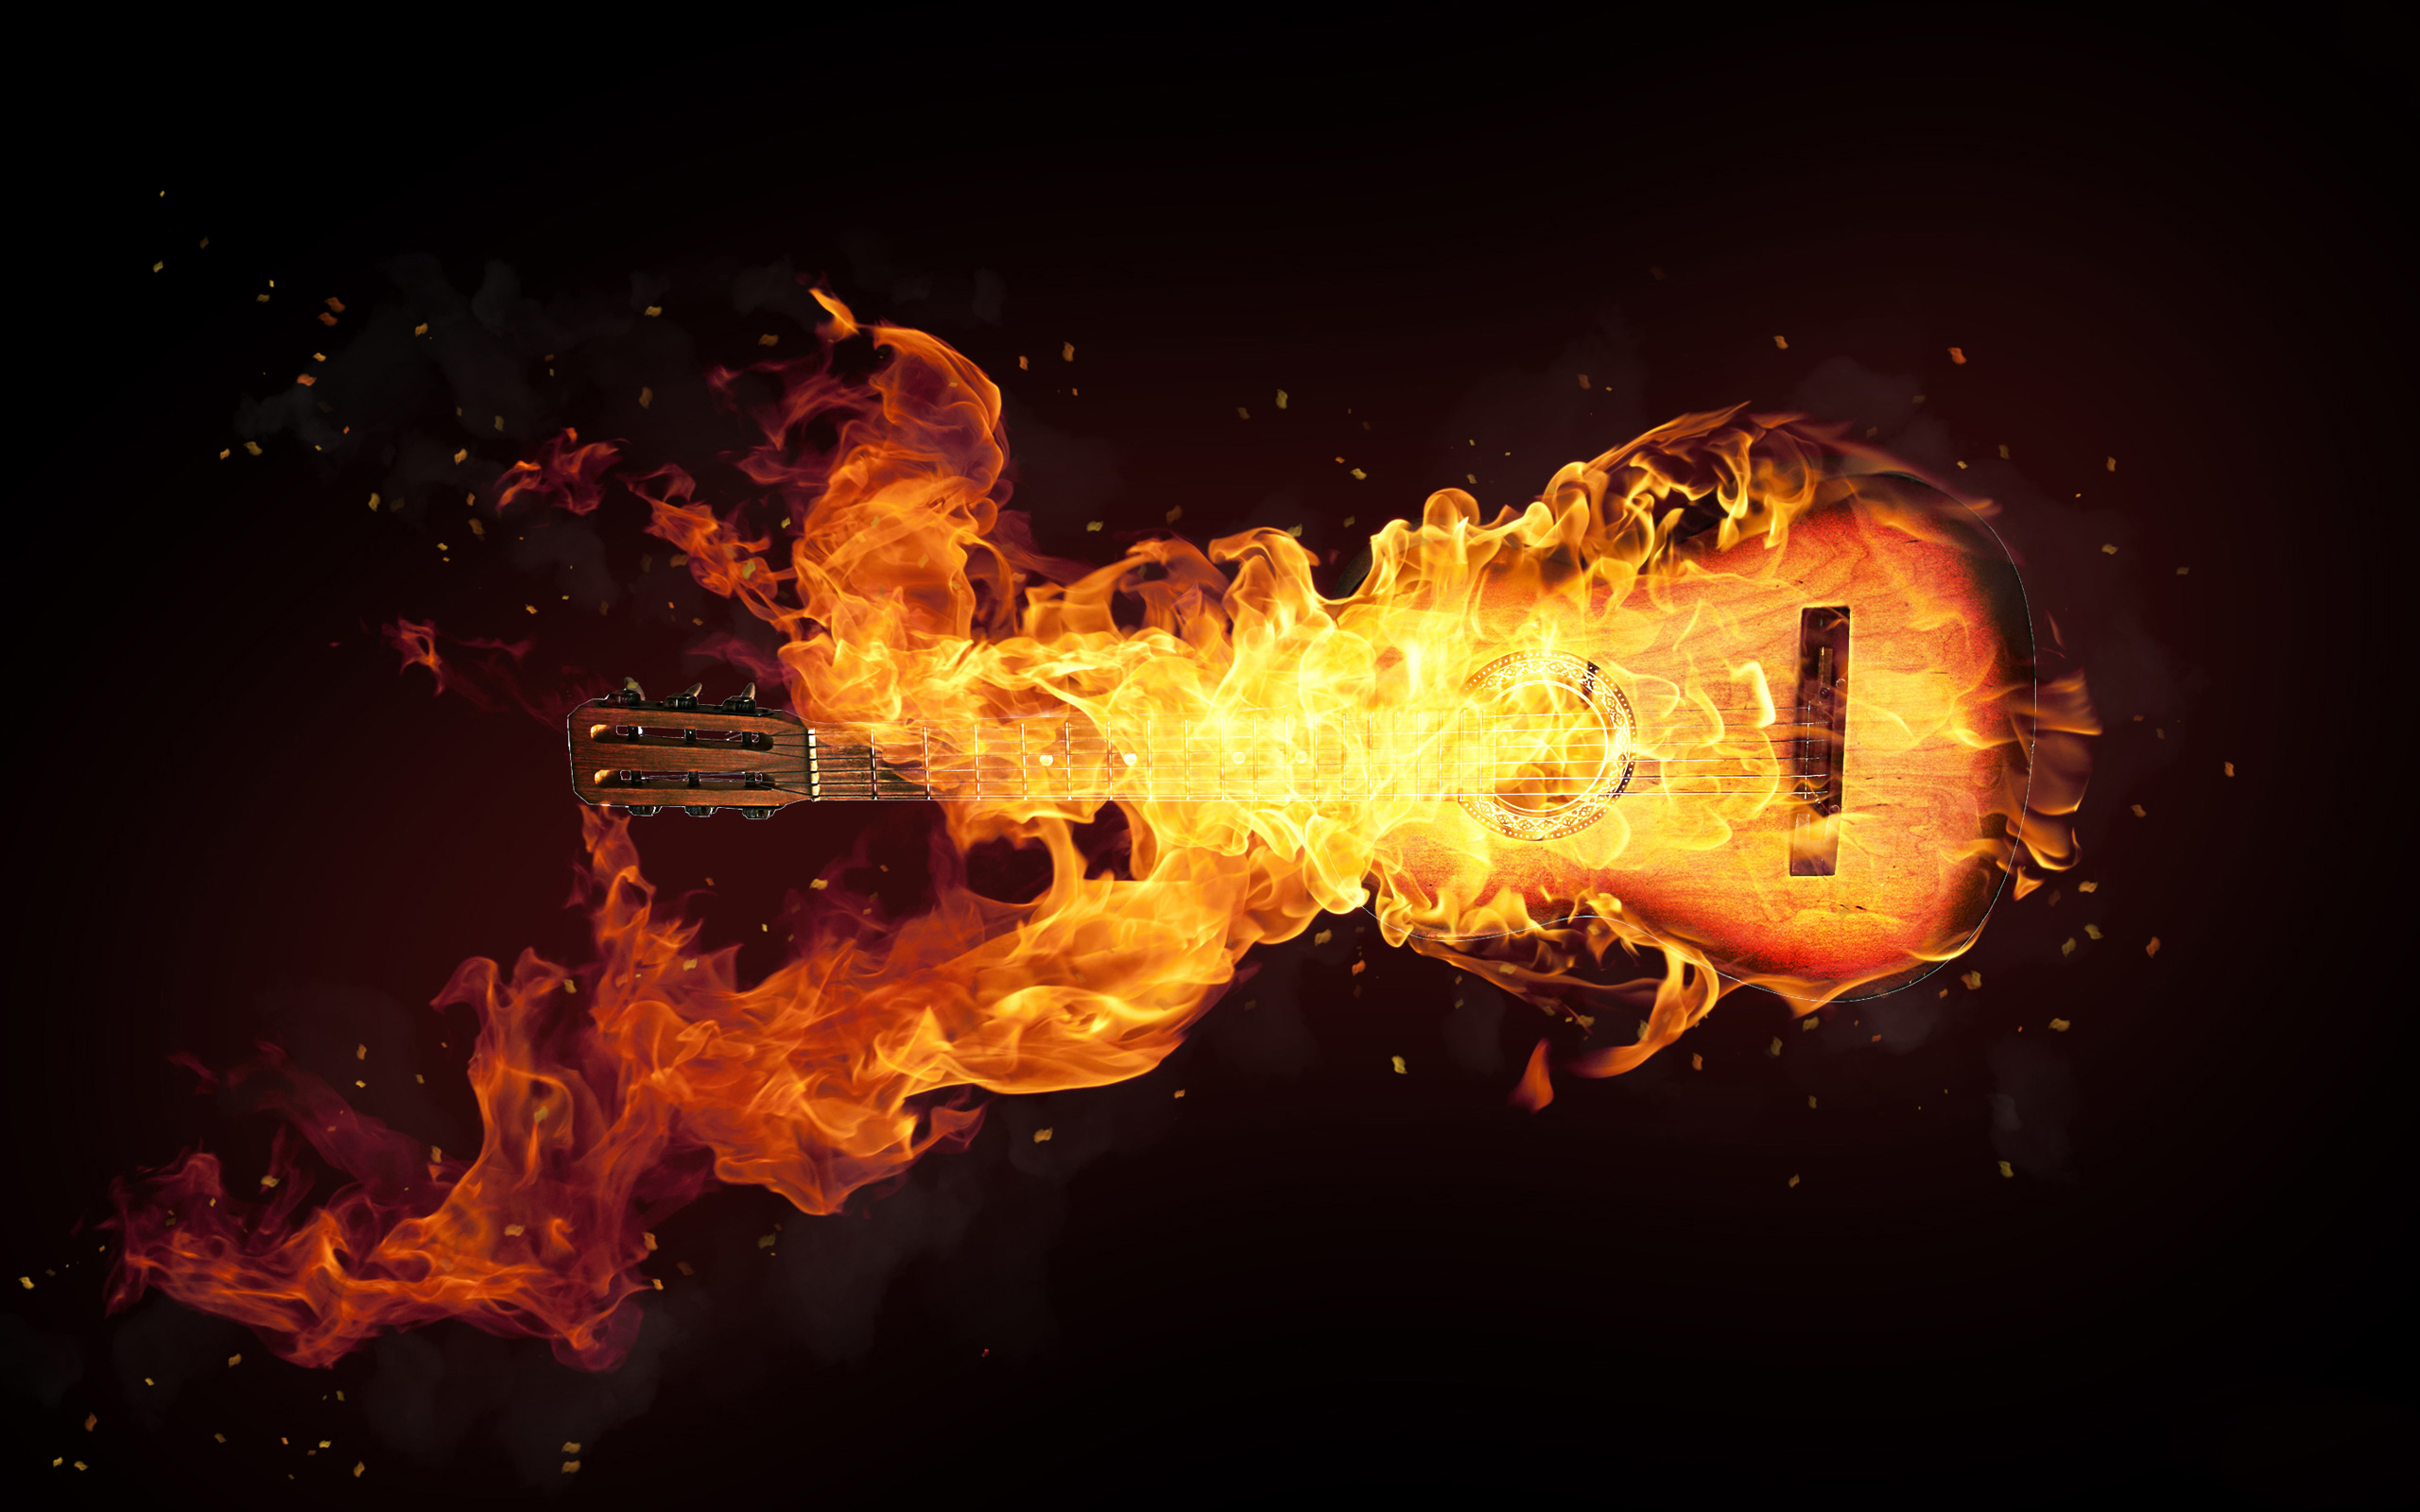 Fire-effect-guitar-HD-Fire-Effect-Art-Girl-Boy-Flower-Car-Dragon-Ball-Guitar-sk-wallpaper-wp3405545